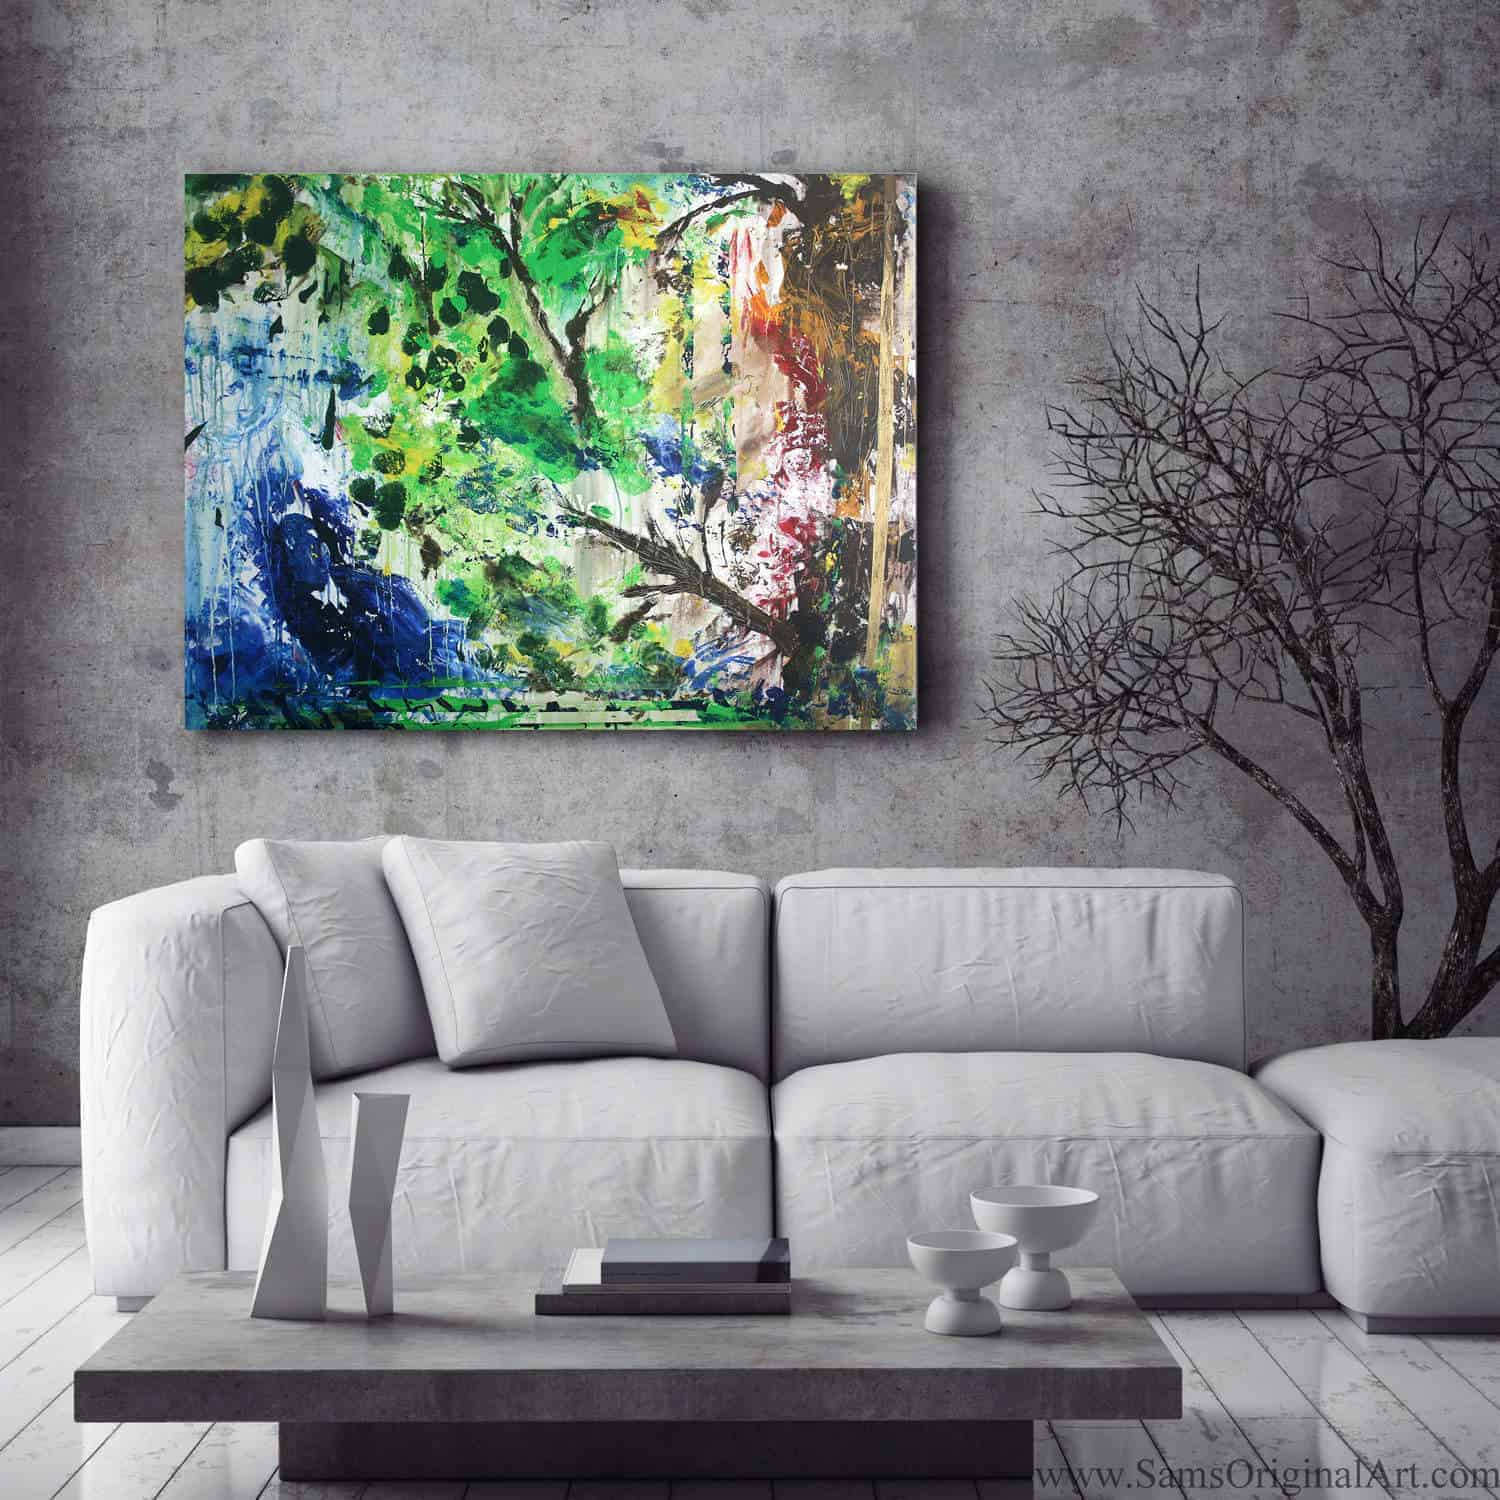 Modern Home Giclee Print Title: Growth